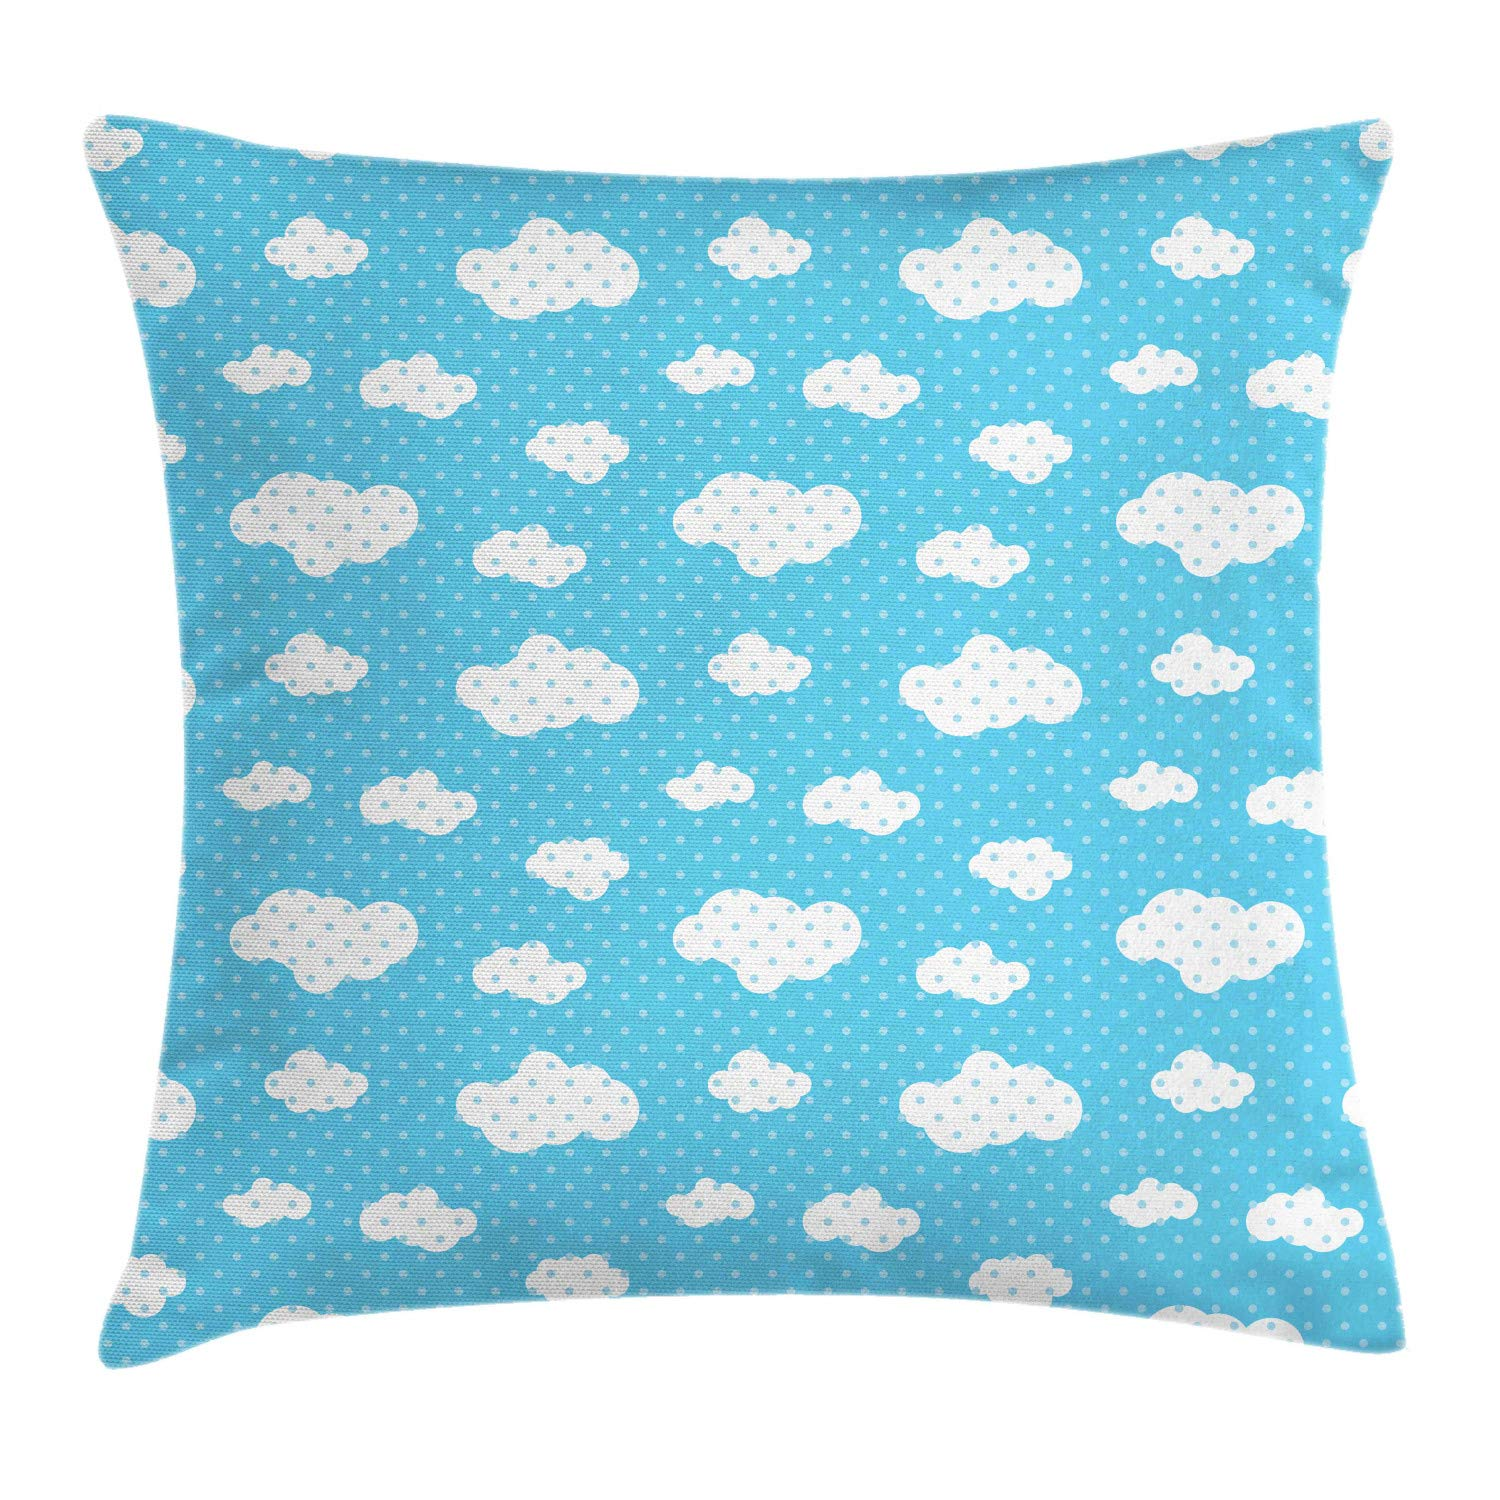 Lunarable Sky Throw Pillow Cushion Cover, Fluffy Clouds with Polka Dots Effects Children's Playroom Nursery Thematic, Decorative Square Accent Pillow Case, 24'' X 24'', Sky Blue and White by Lunarable